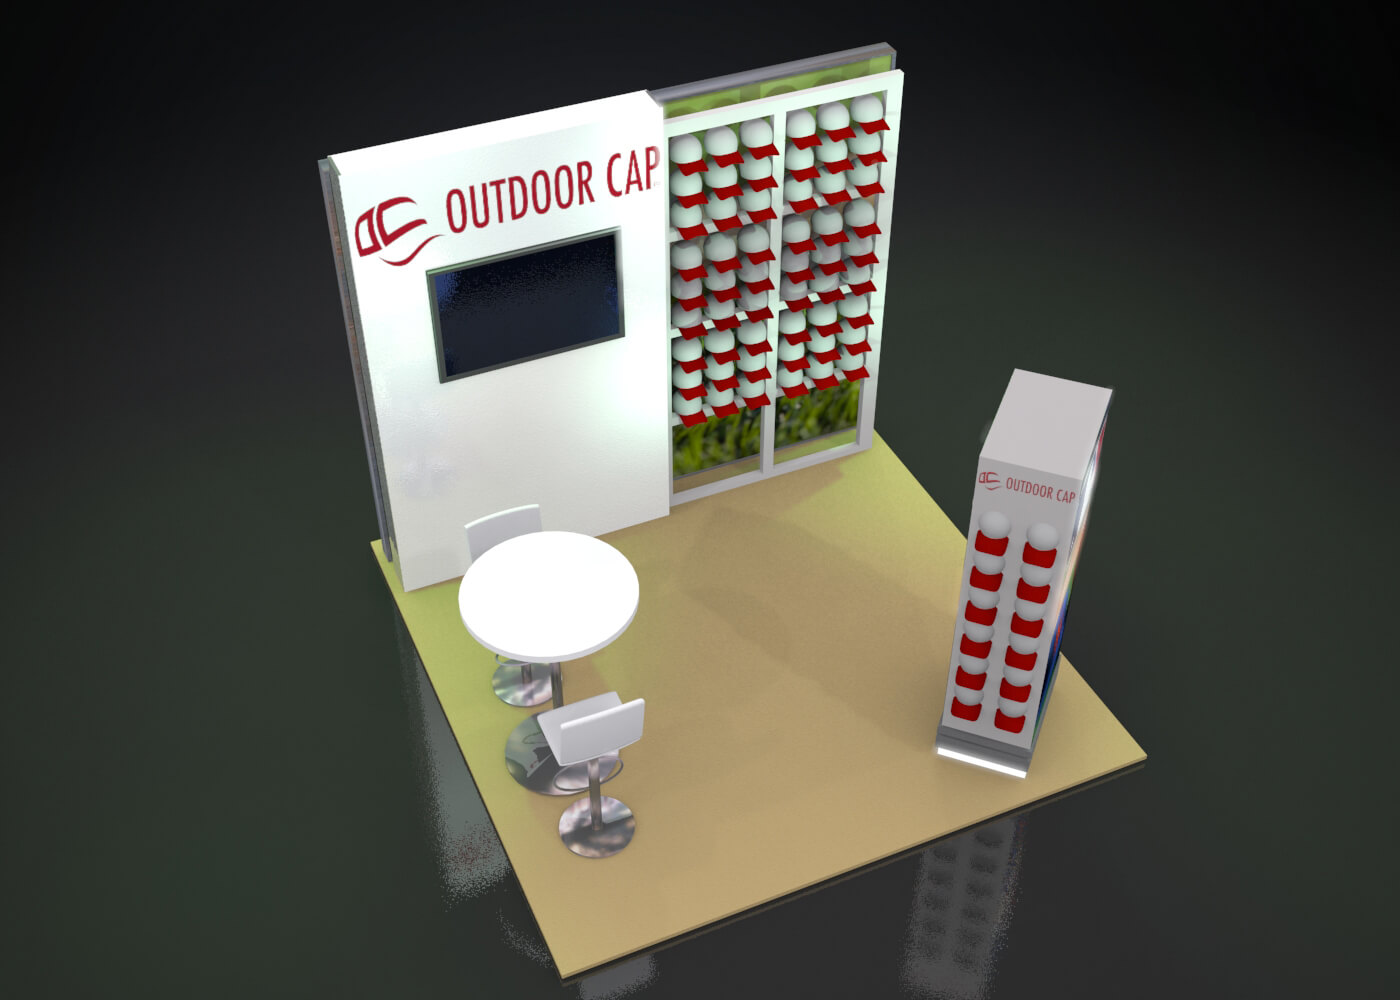 Outdoor Cap 10x10 Exhibit Design